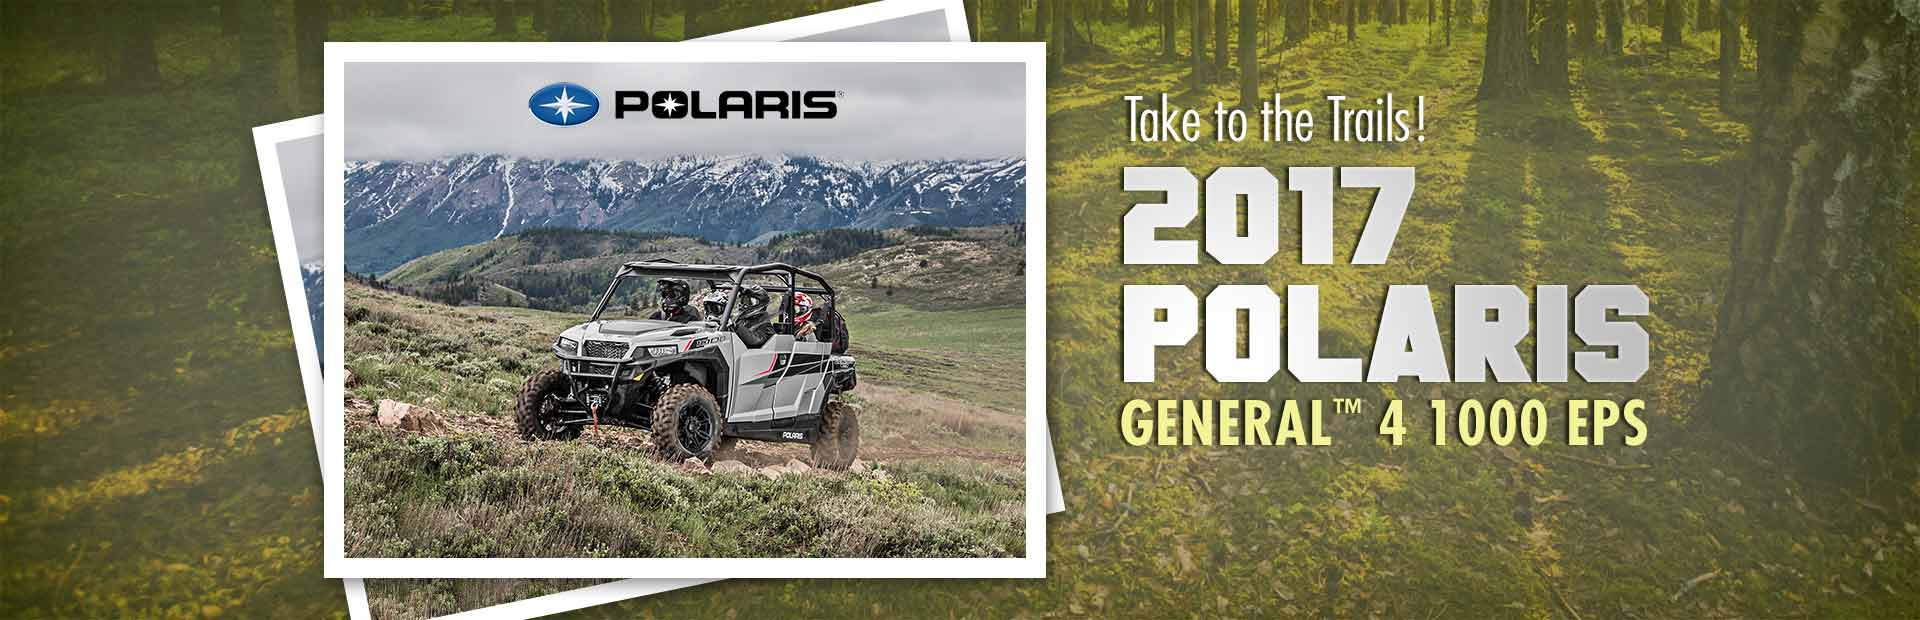 2017 Polaris GENERAL™ 4 1000 EPS: Click here for details.